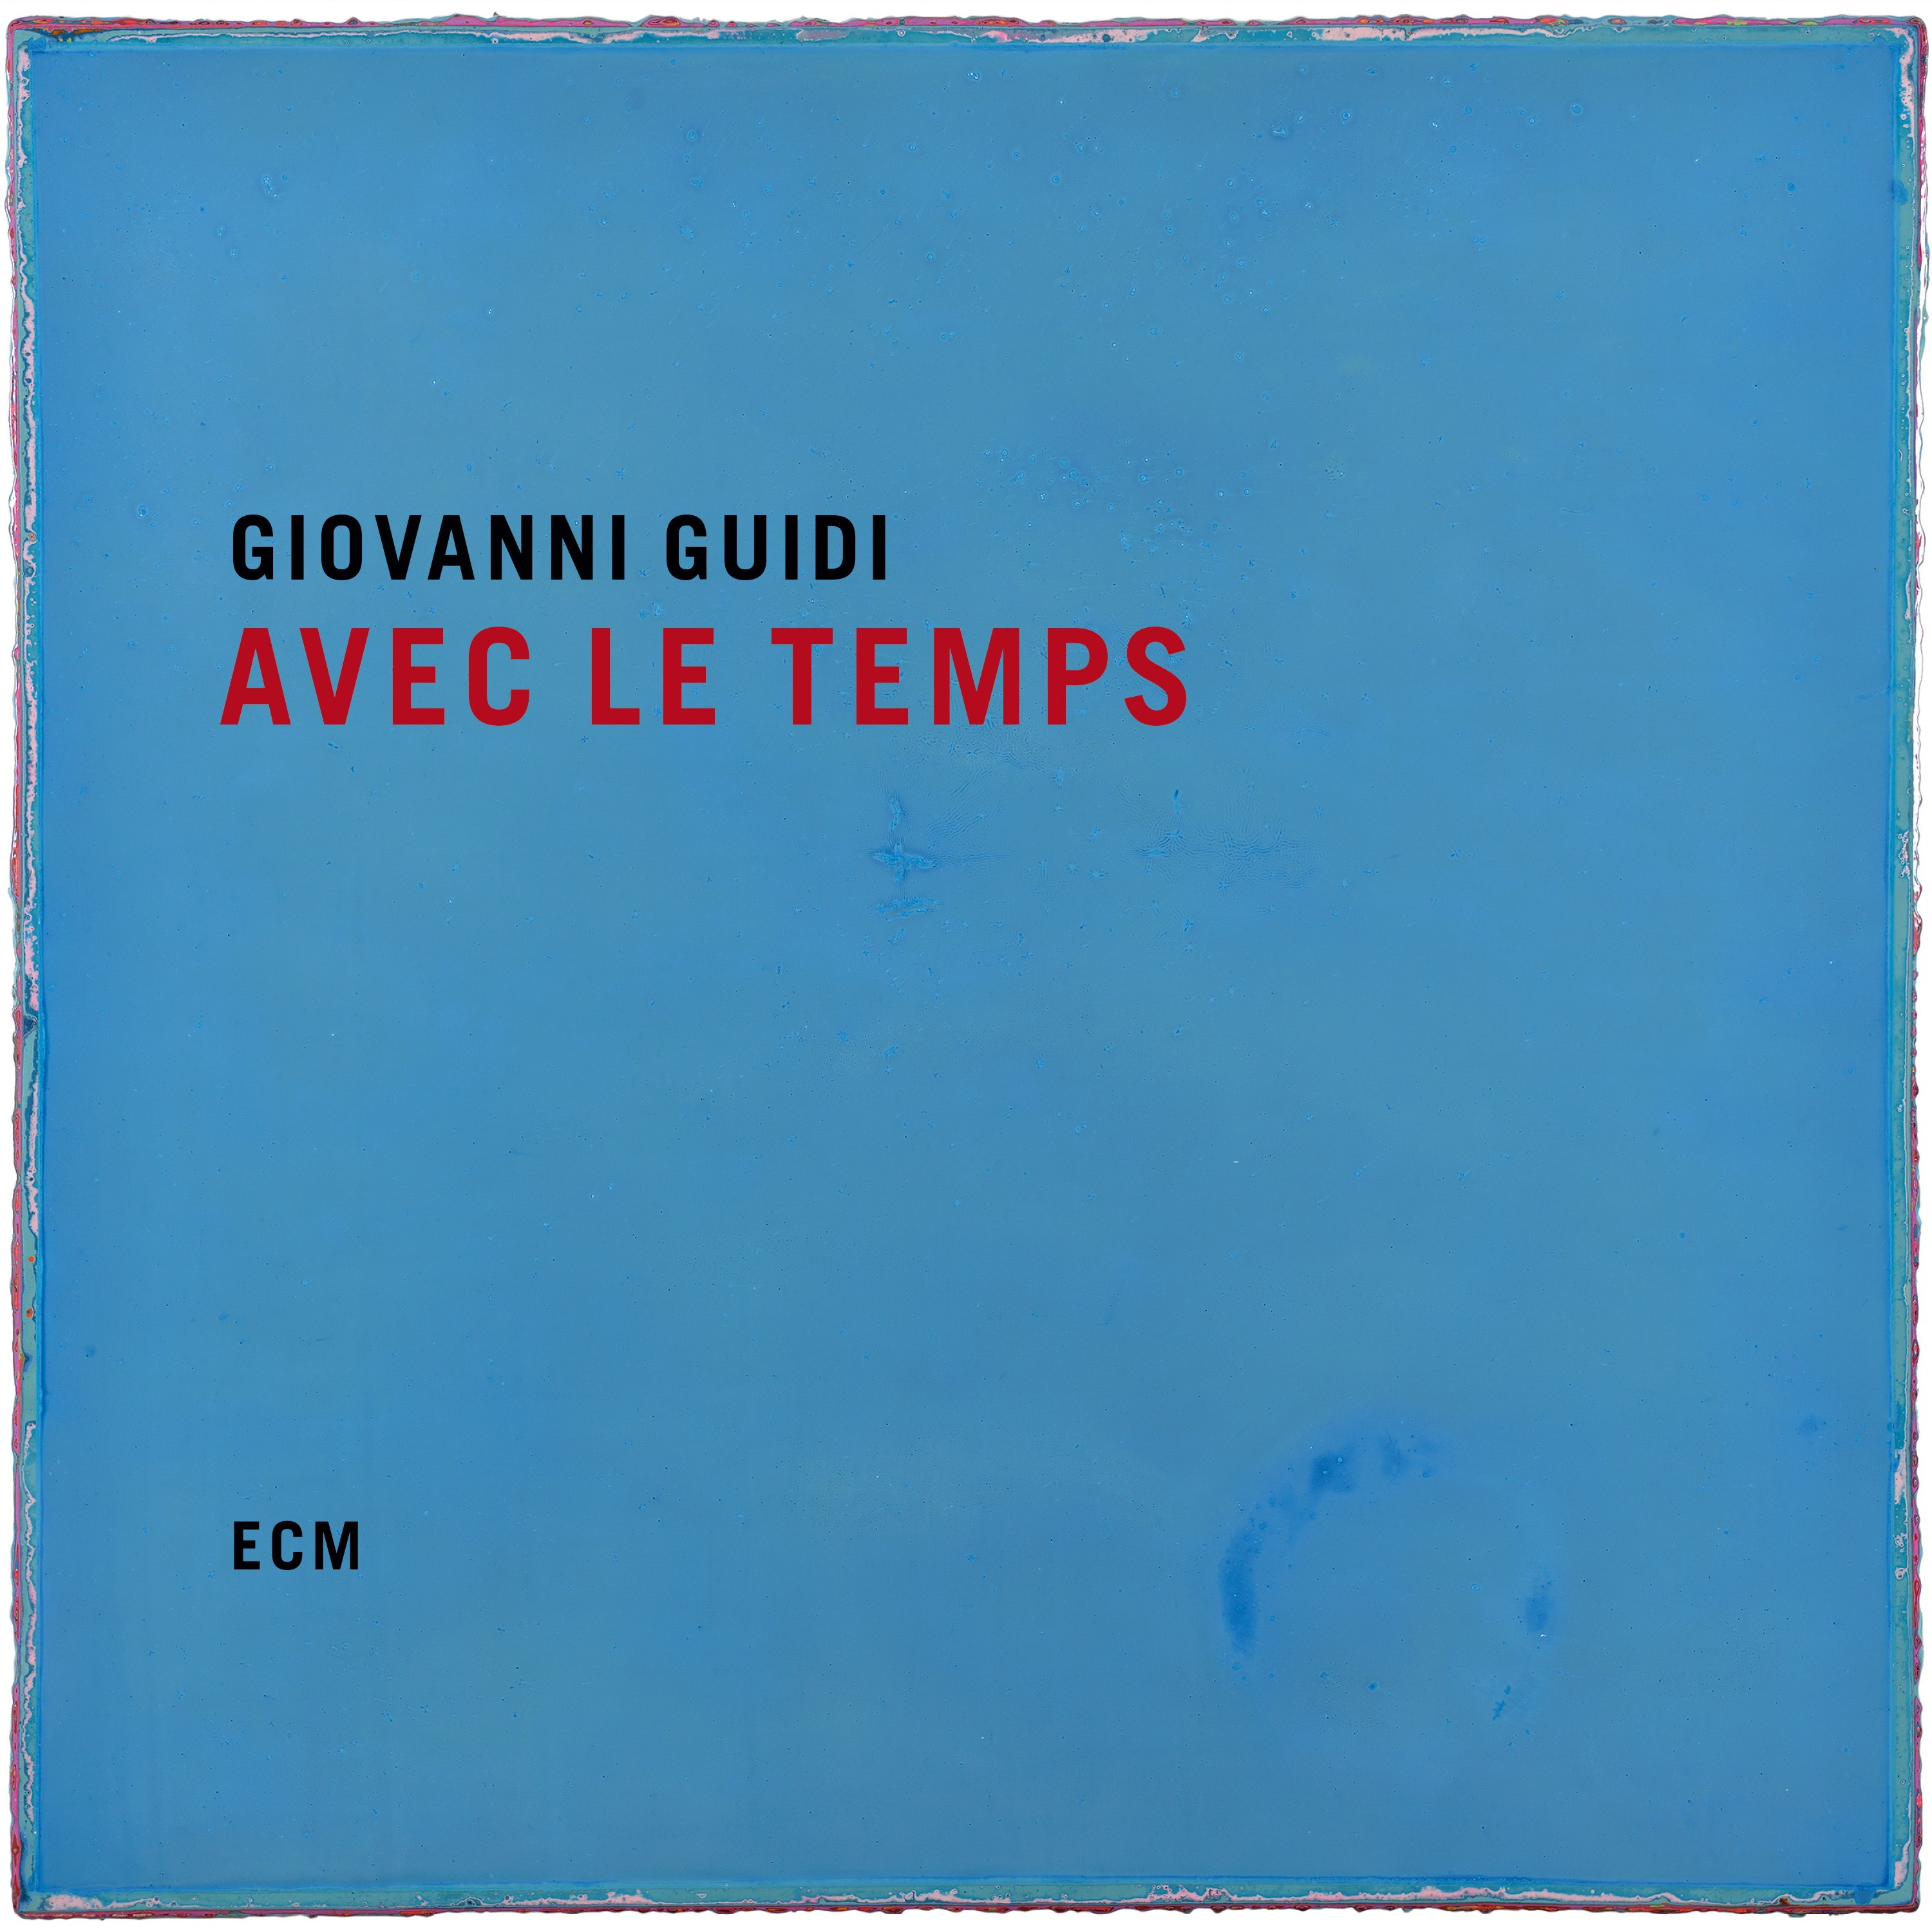 Giovanni Guidi, F.Bearzatti, R.Cecchetto, T.Morgan, J. Lobo AVEC LE TEMPS CD